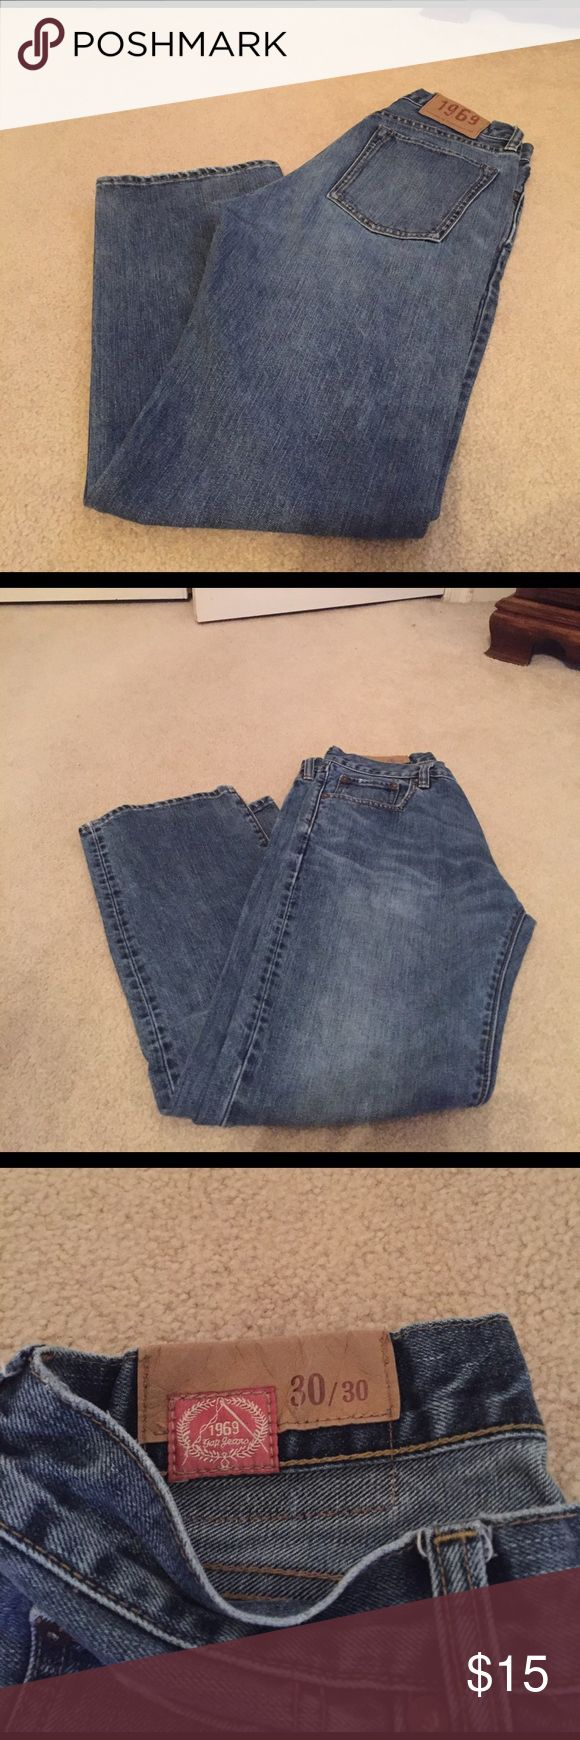 Men's GAP Standard Fit 30/30 Men's Gap jeans perfect condition.  Size 30/30 standard fit.  I had to write my sons name on the inside label because he went off to a camp. Sorry it didn't come off, but not very noticeable. GAP Jeans Straight